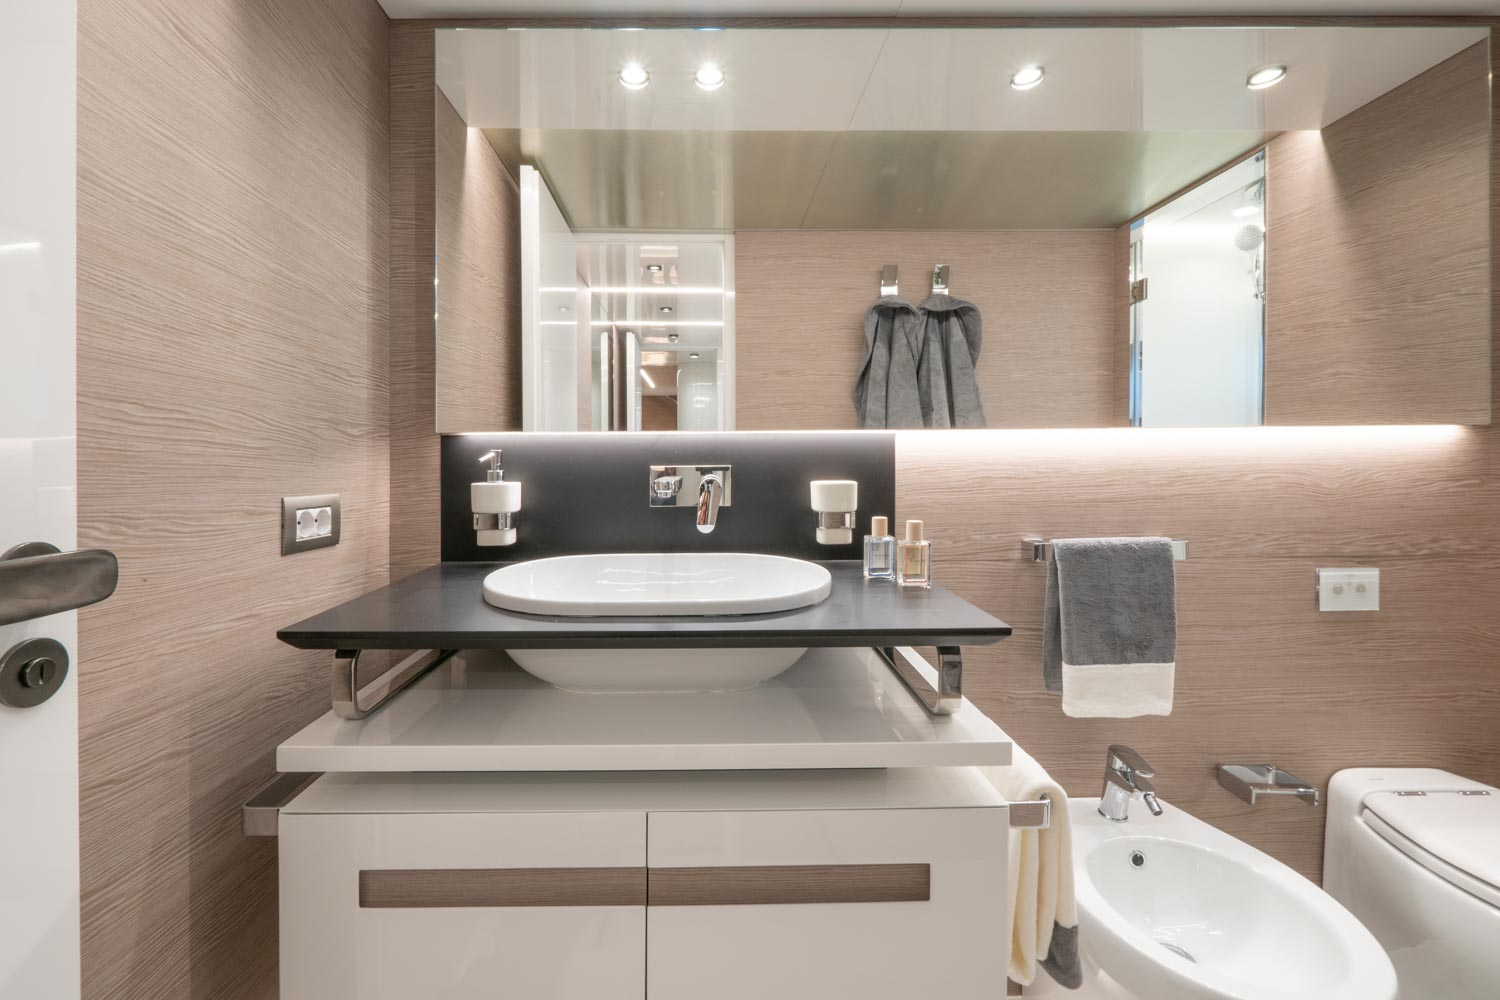 Extra 93 Bathroom Design Yacht